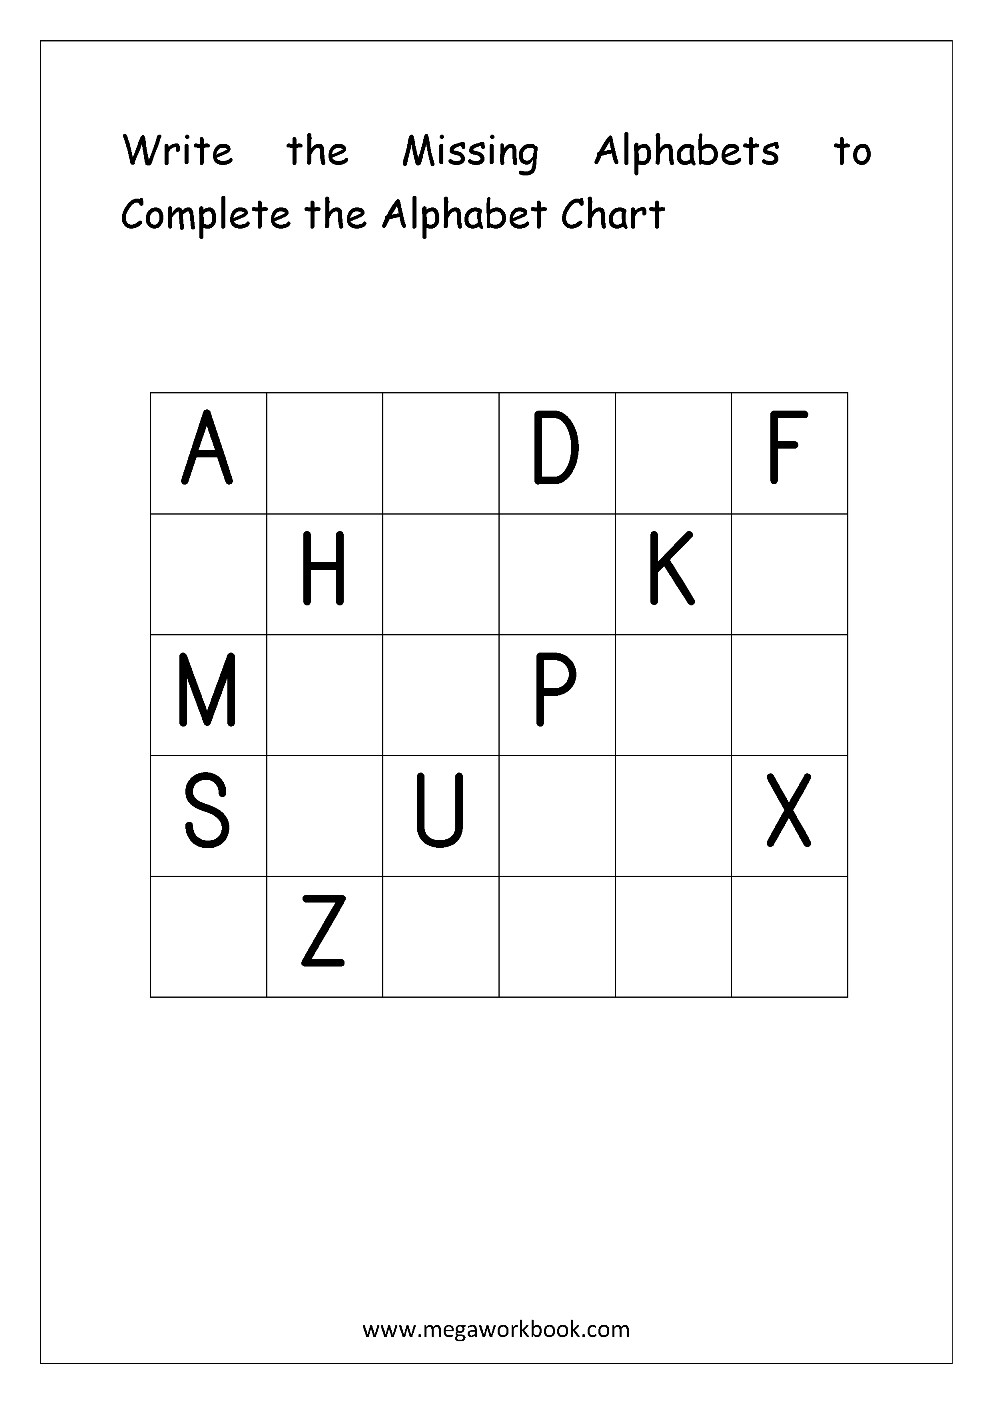 Free English Worksheets - Alphabetical Sequence pertaining to Alphabet Order Worksheets Printable